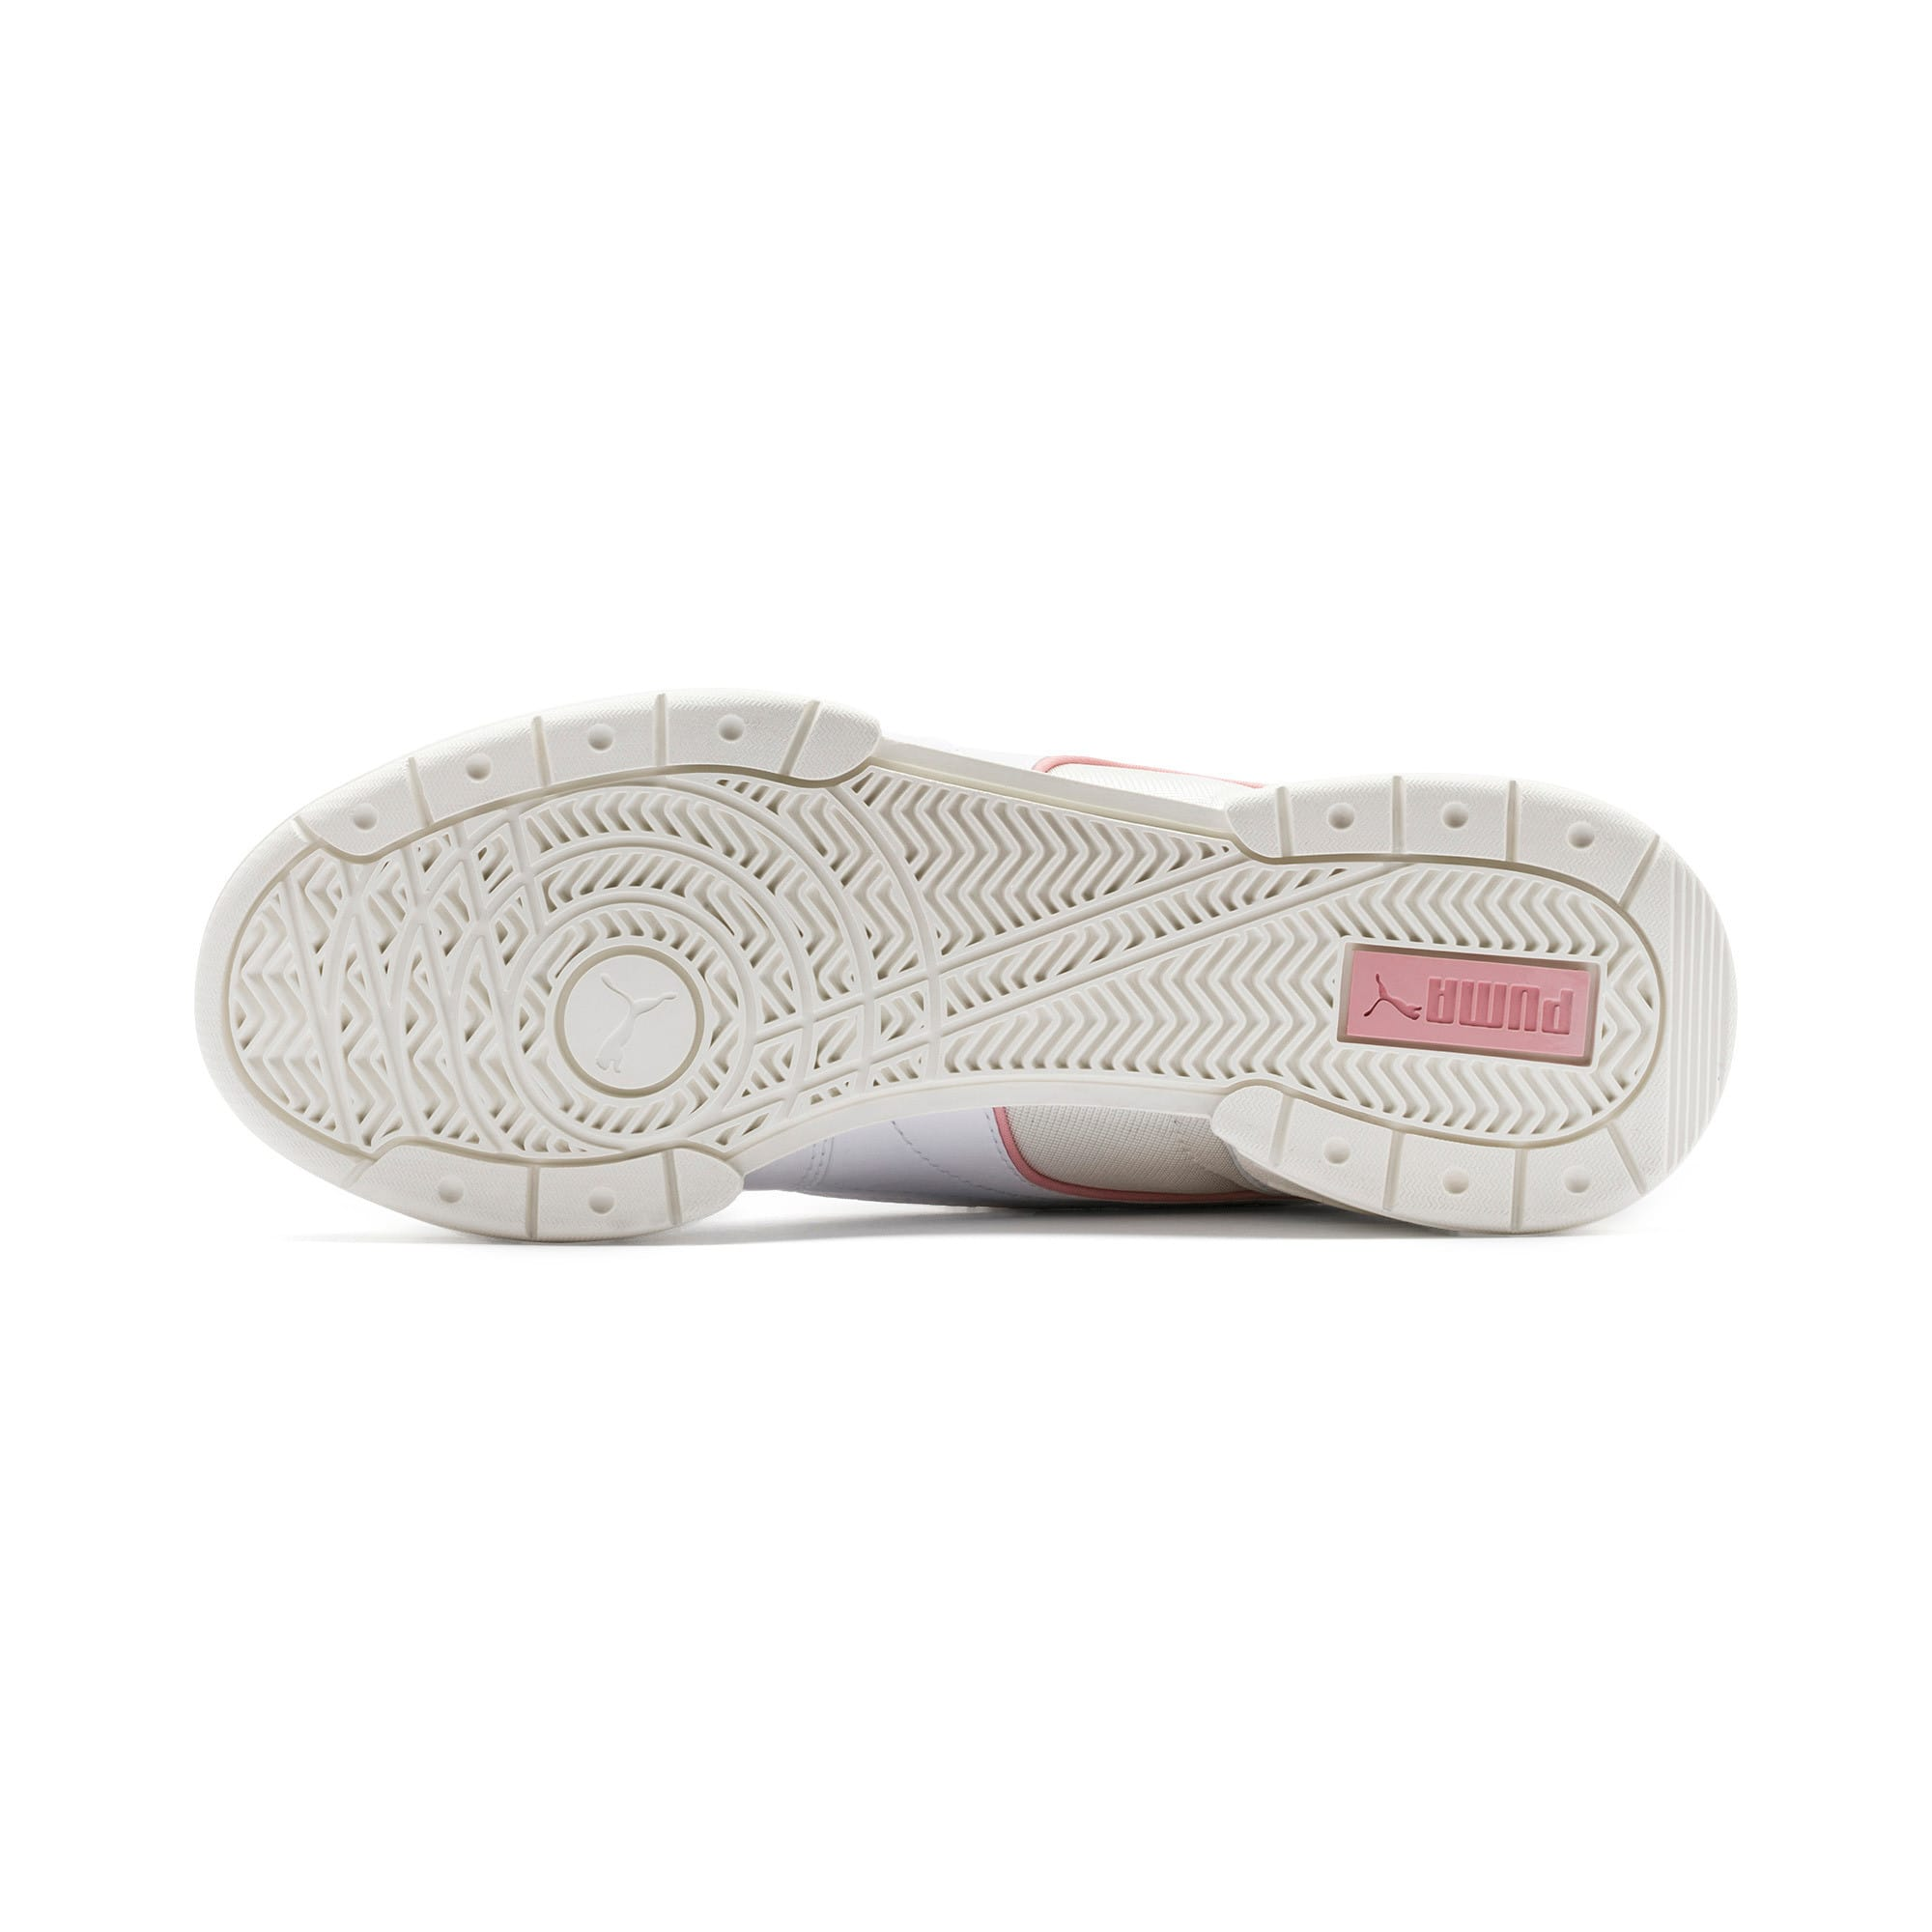 Thumbnail 6 of CGR Original Trainers, PWht-Bridal Rose-Marshmallow, medium-IND